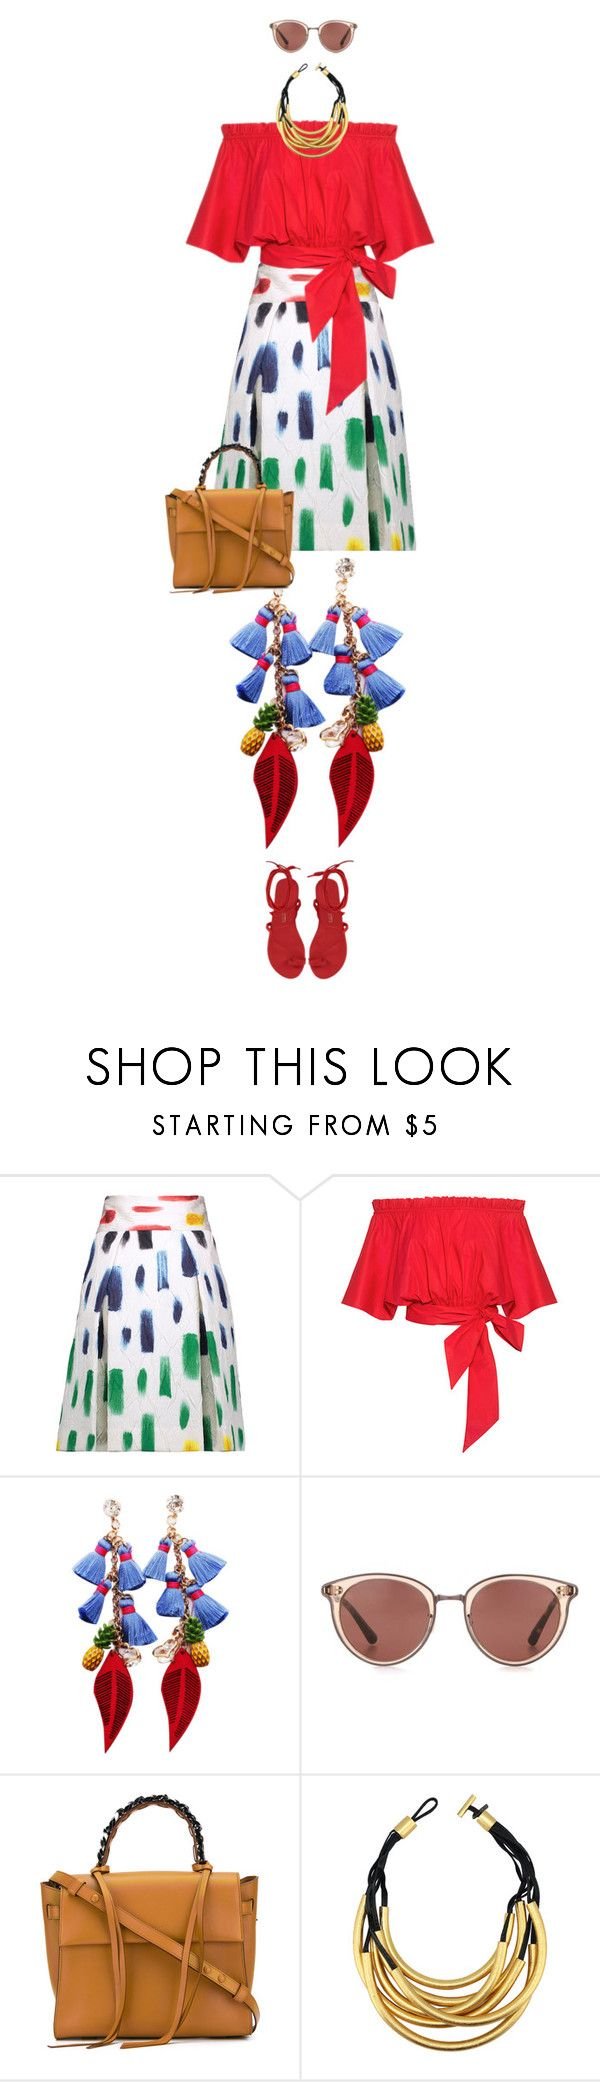 """""""eva 1039"""" by evava-c on Polyvore featuring Milly, Saloni, Oliver Peoples, Elena Ghisellini and Monies"""